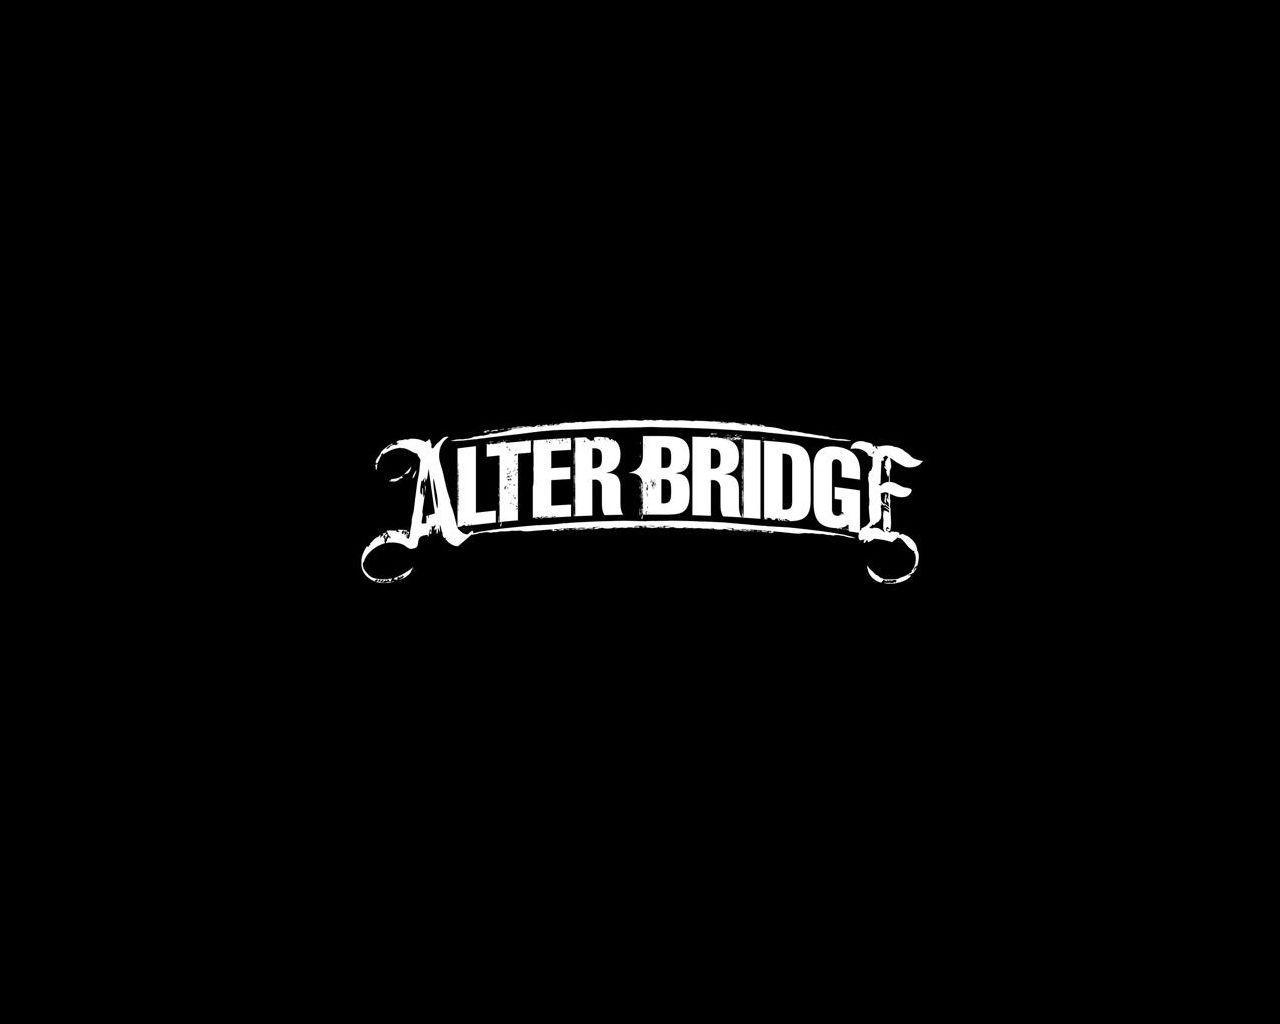 Alter Bridge Wallpapers Wallpaper Cave